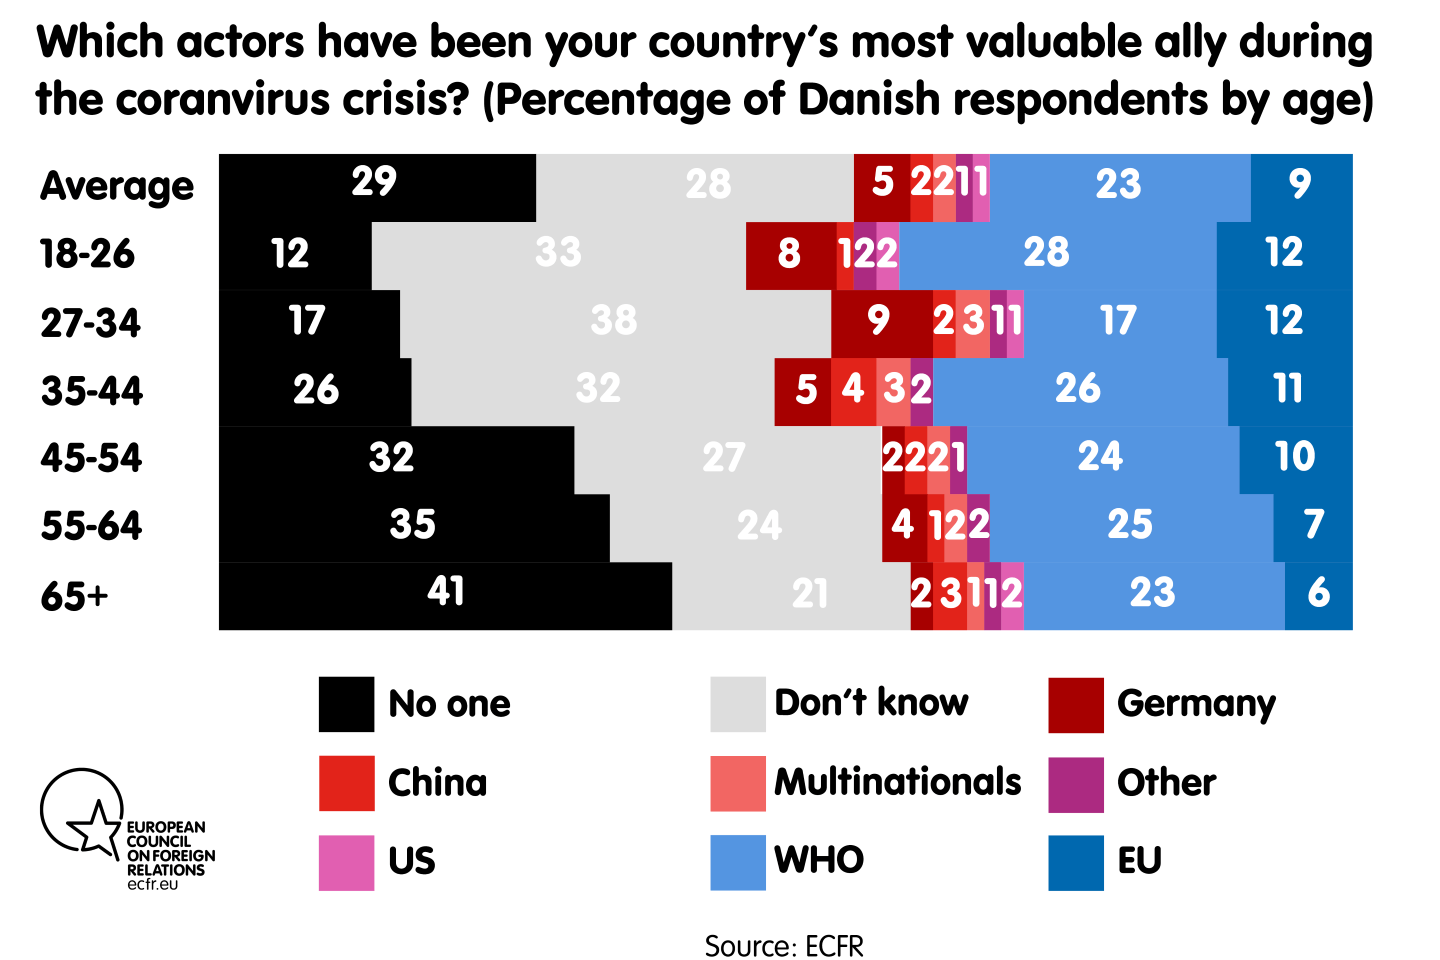 Which actors have been your country's most valuable ally during the coronavirus crisis?